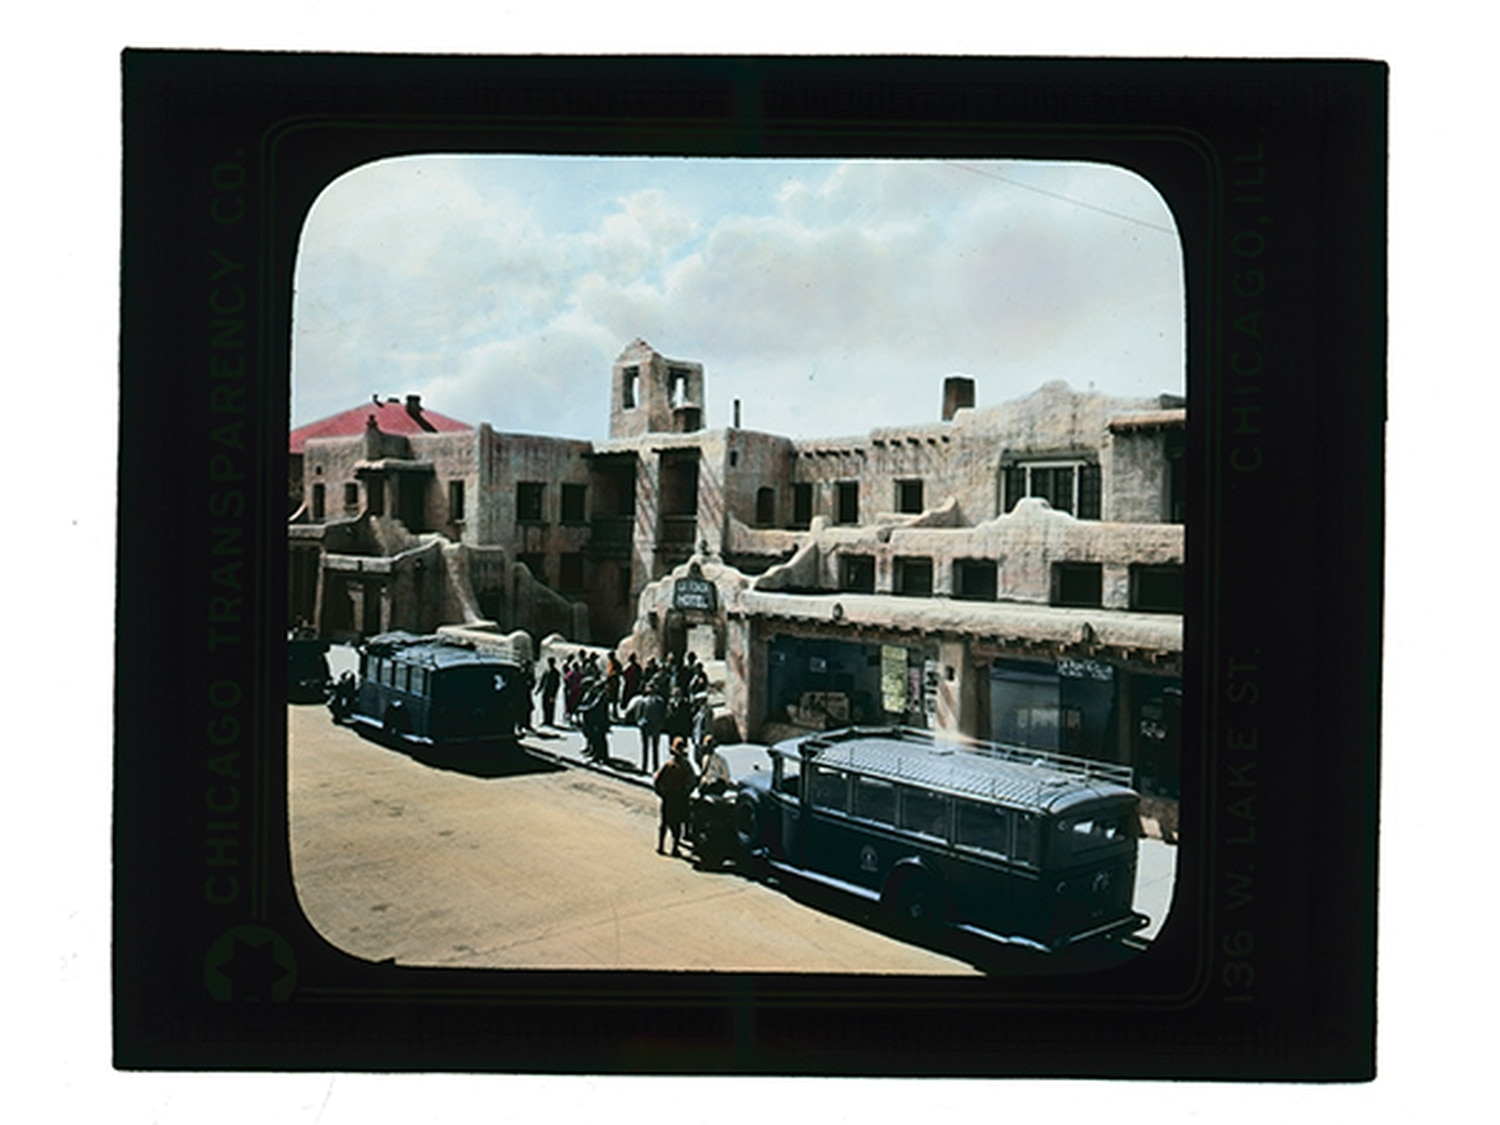 """A slice of history: In the early 1900s, the Santa Fe railroad bought La Fonda, which became the headquarters for Fred Harvey's new """"Indian Detour"""" bus-tour business."""